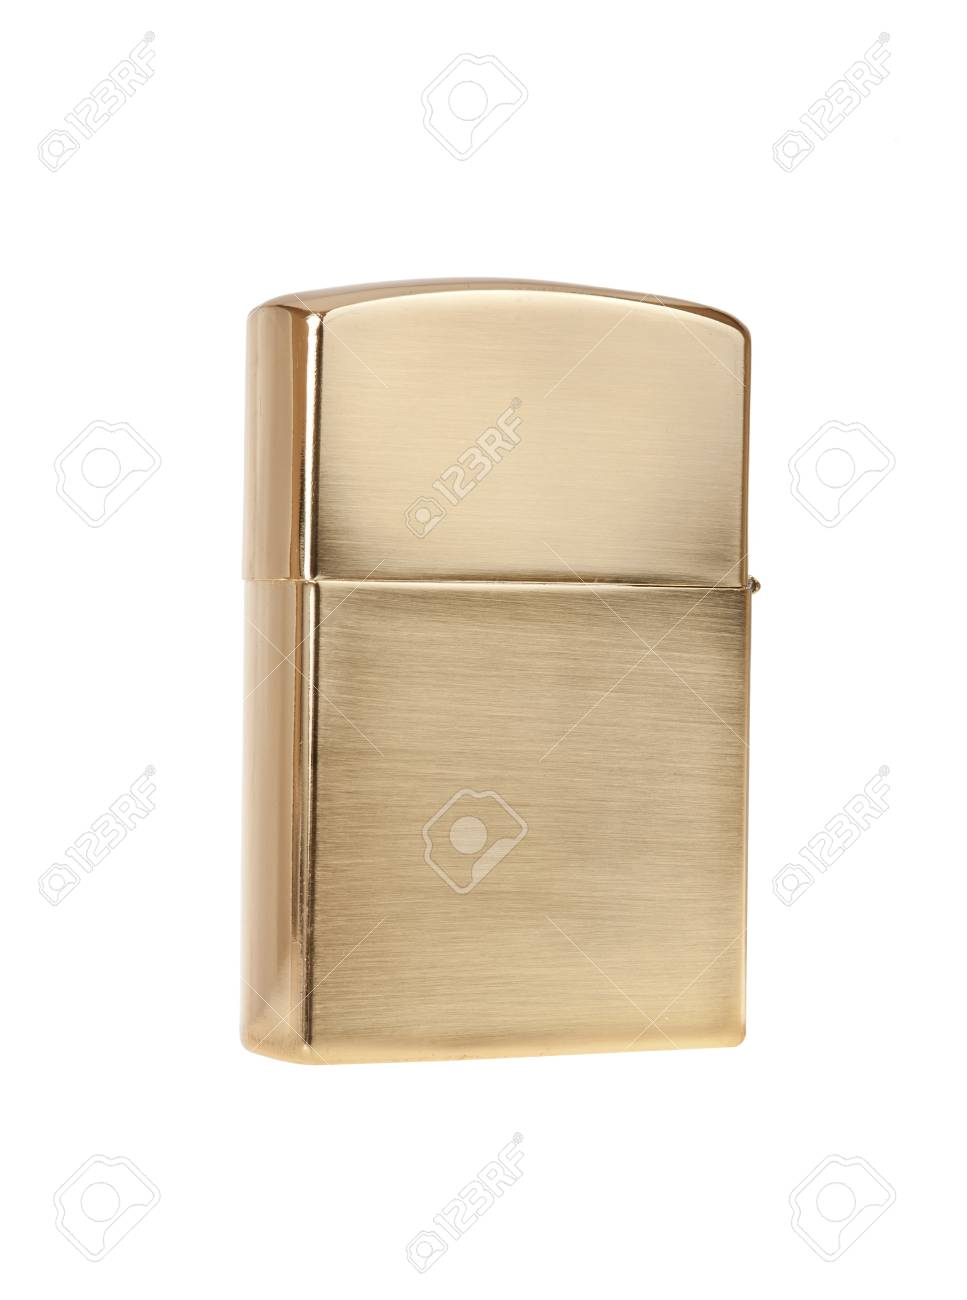 Metal lighter isolated on white background, gold color Stock Photo - 16154146